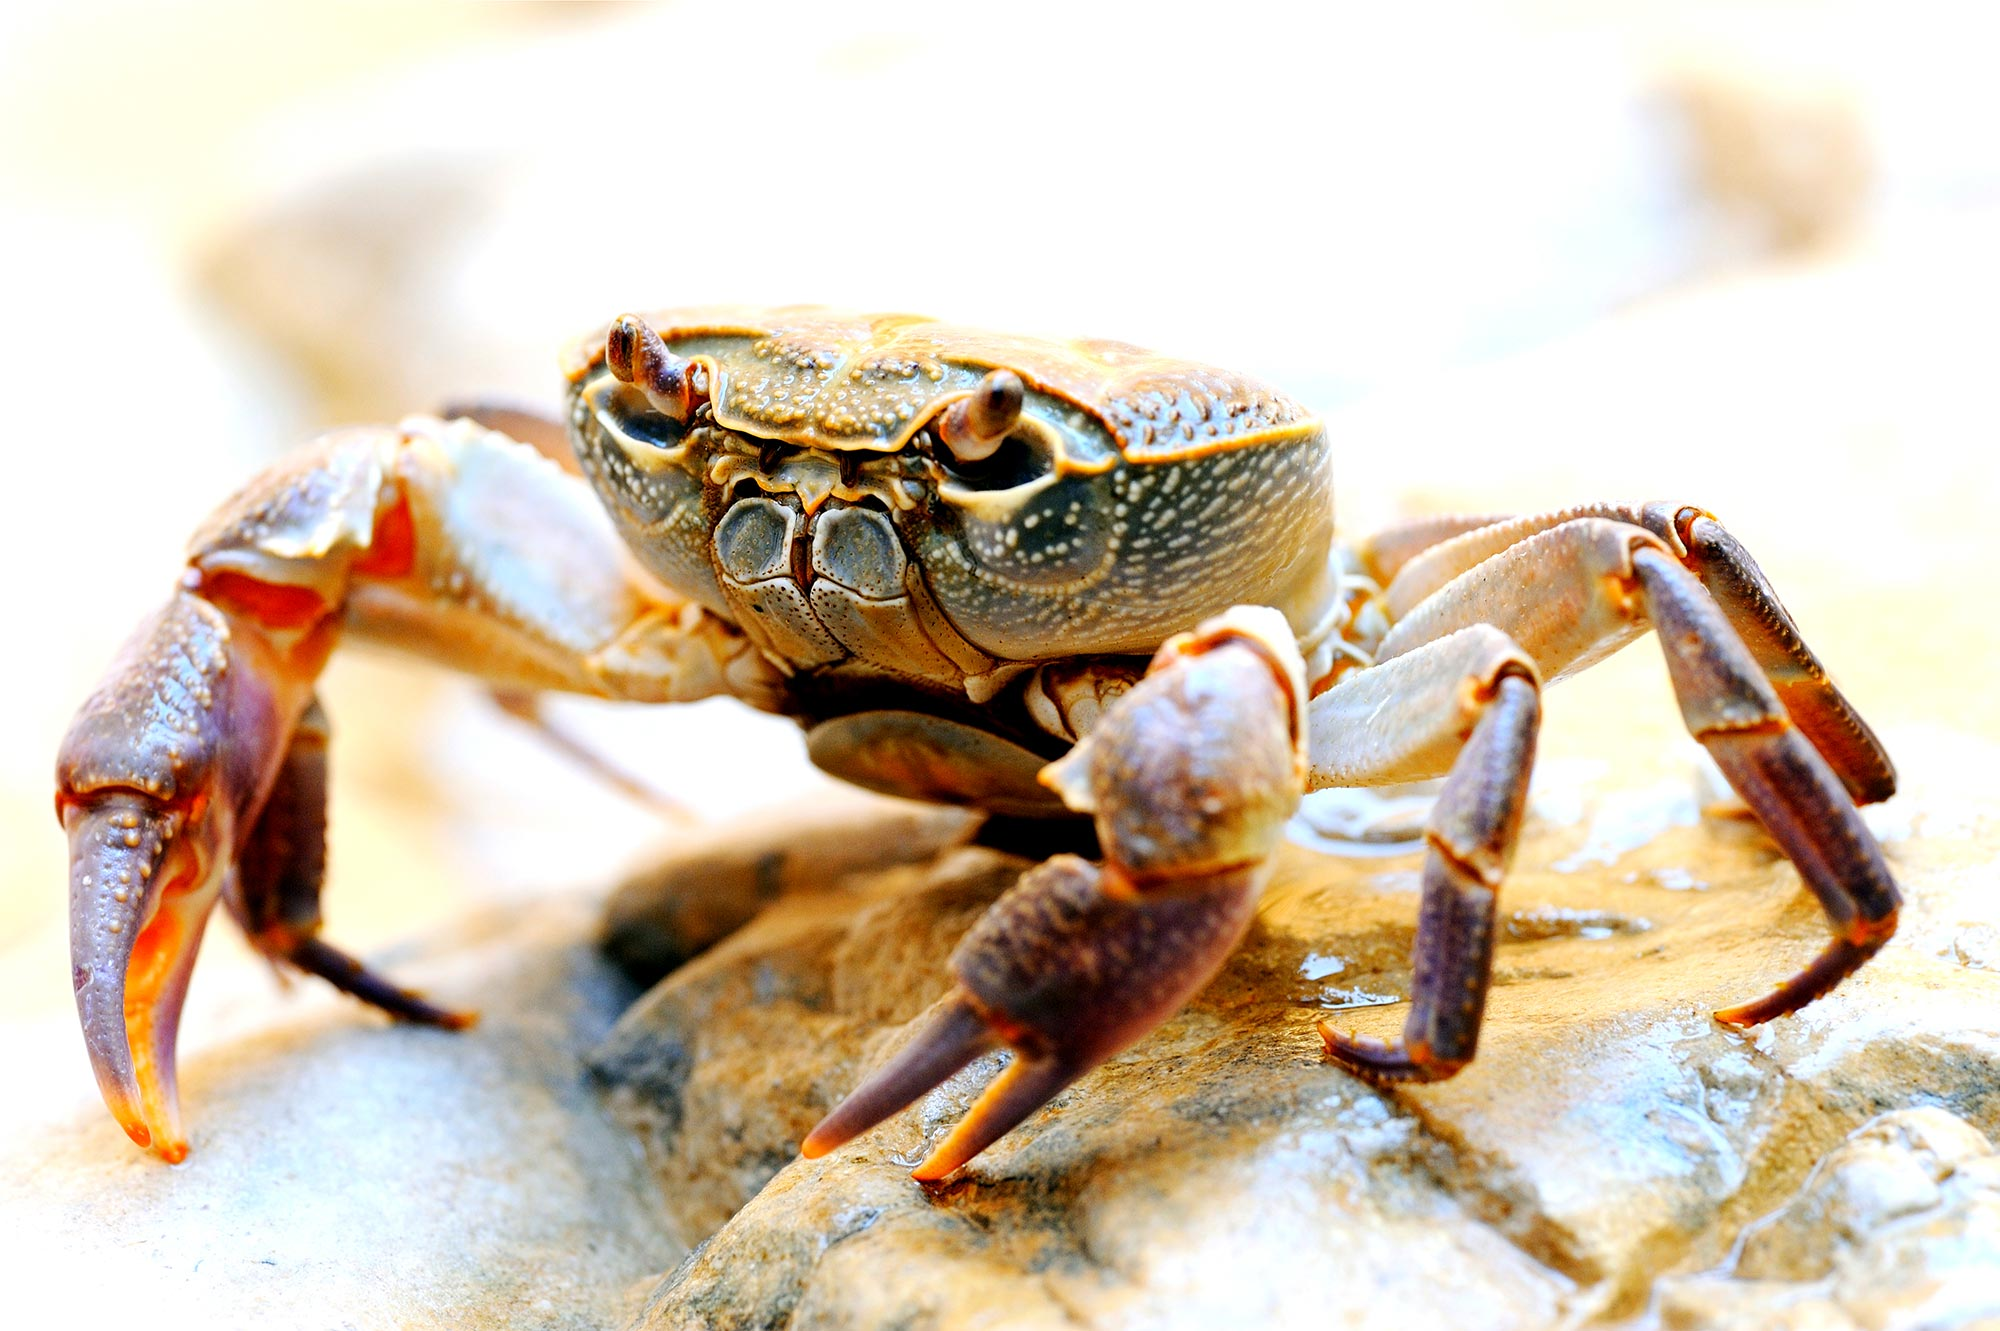 The Fauna of Israel - Freshwater Crab